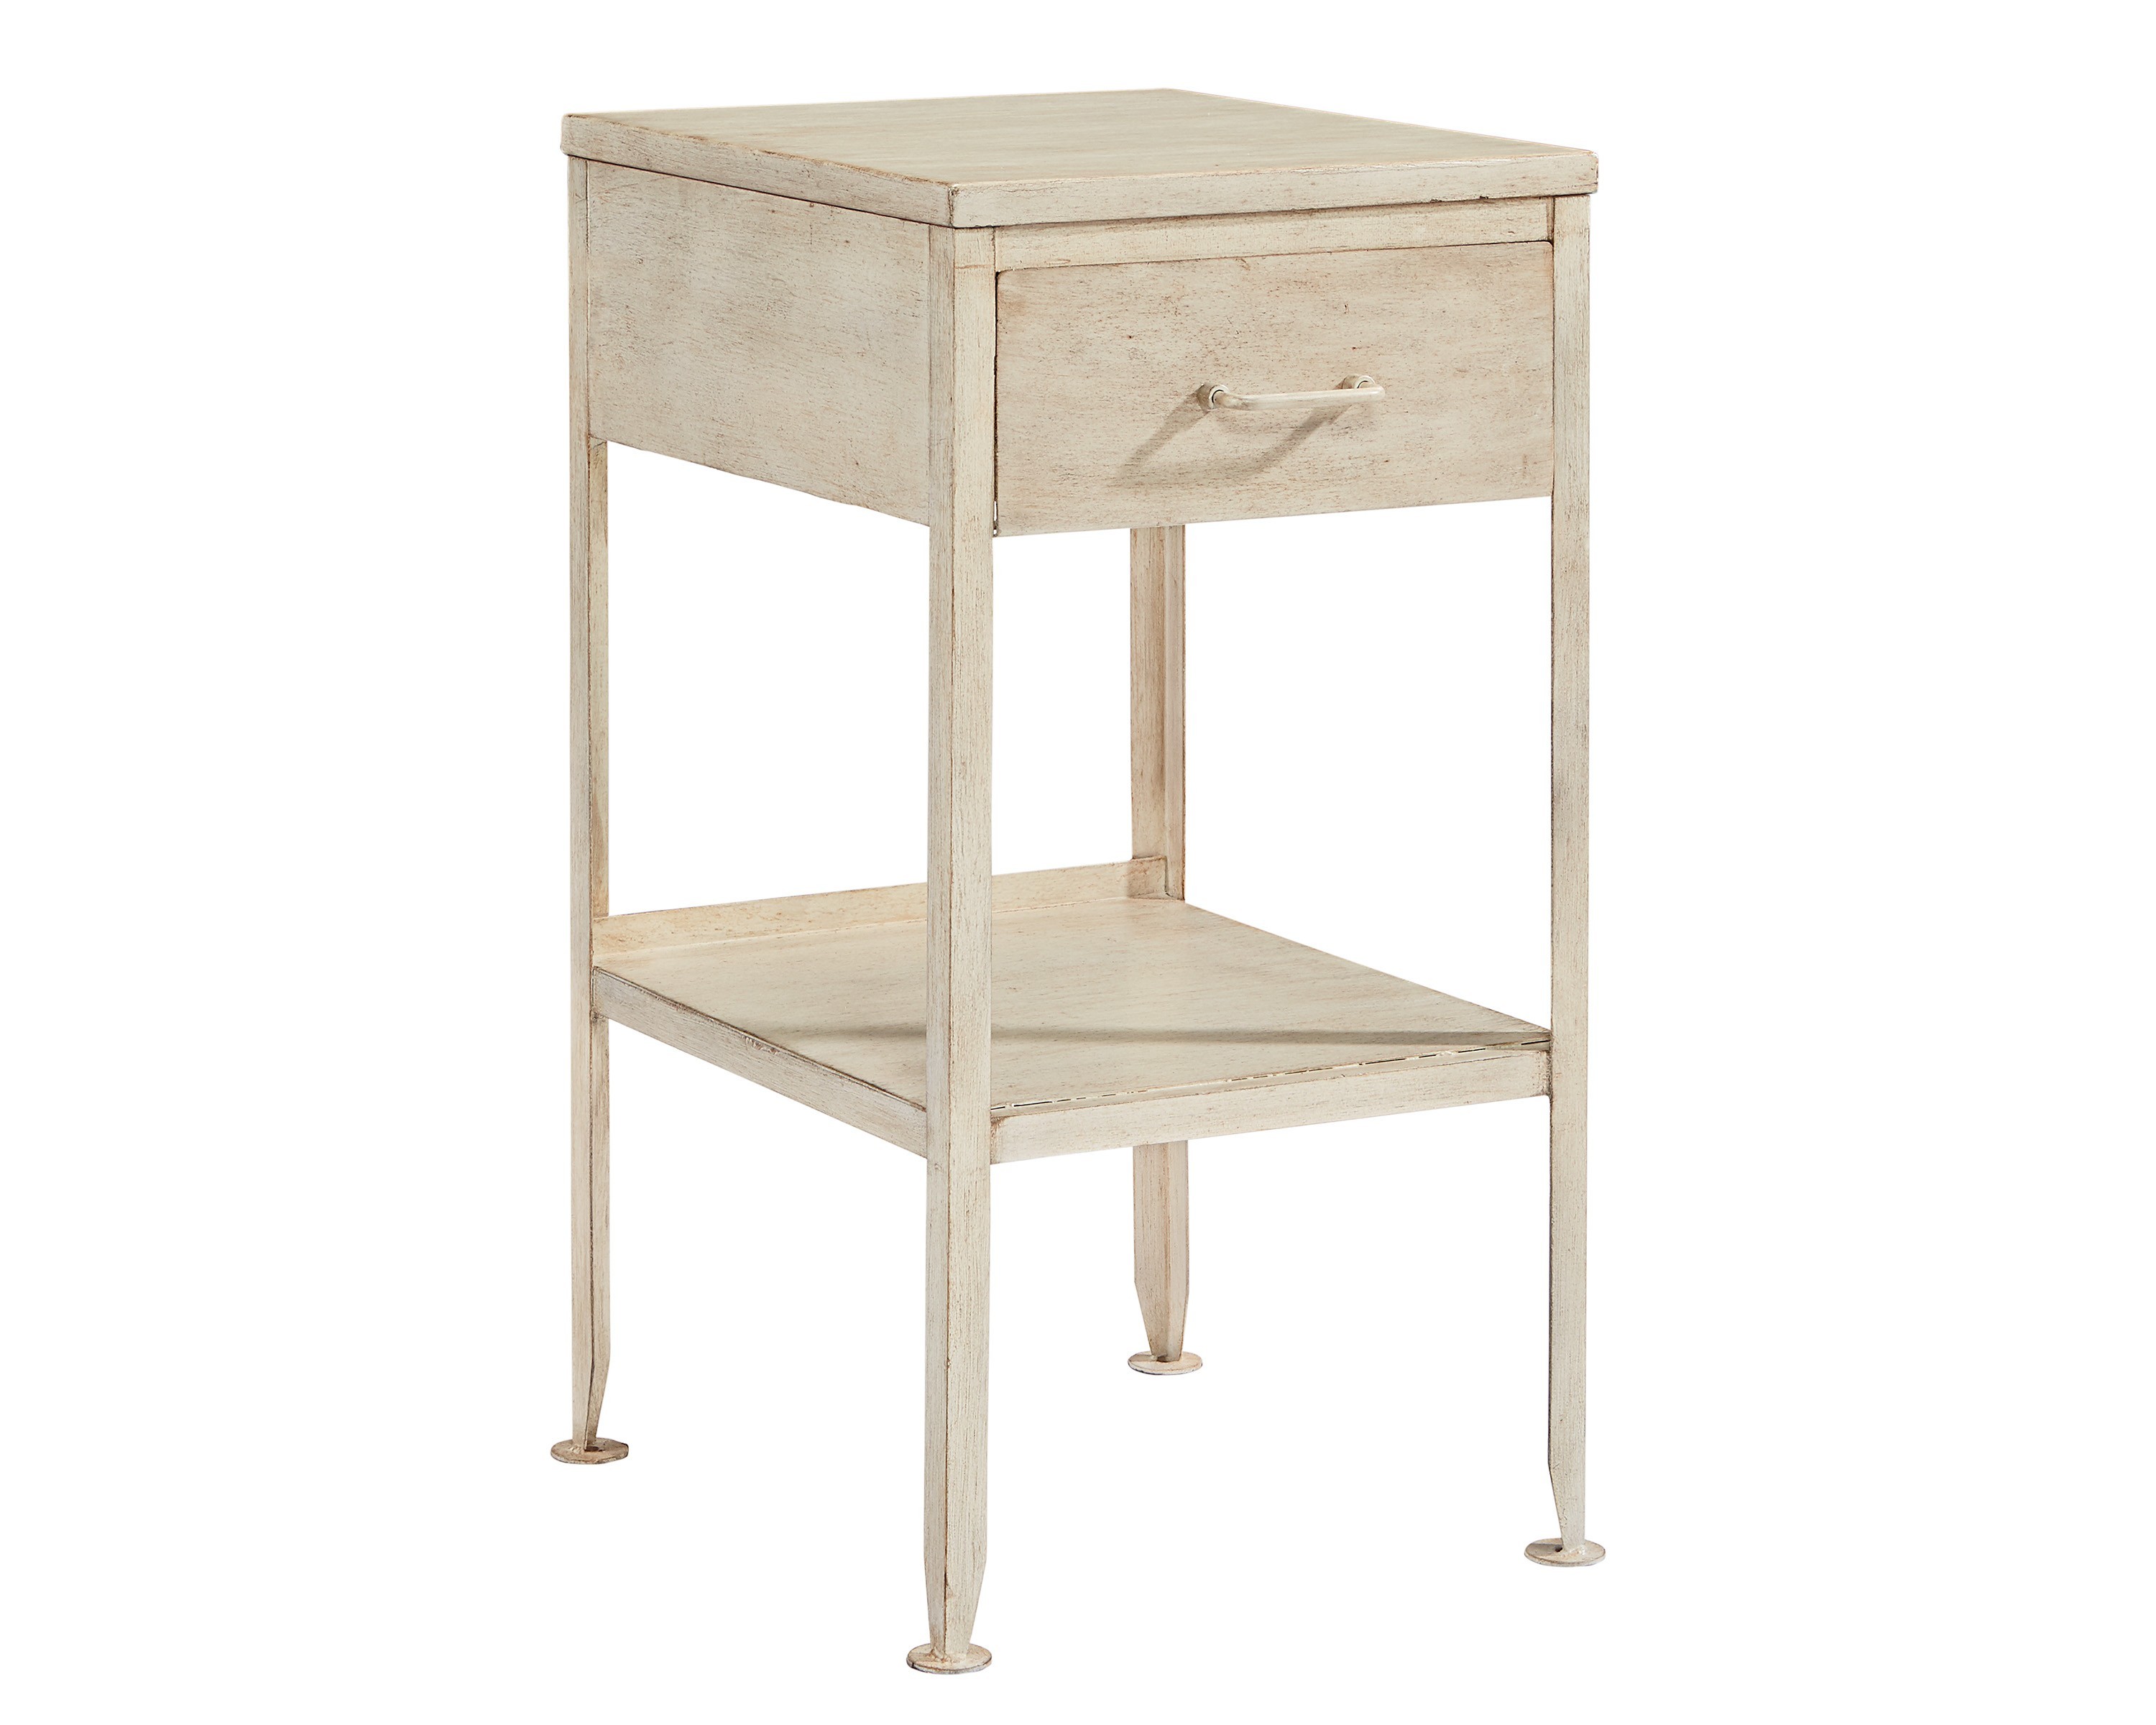 metal utility side table magnolia home silo accent with basket drawers this vintage inspired has lots purpose its drawer and open cubby storage will great piece drop leaf desk